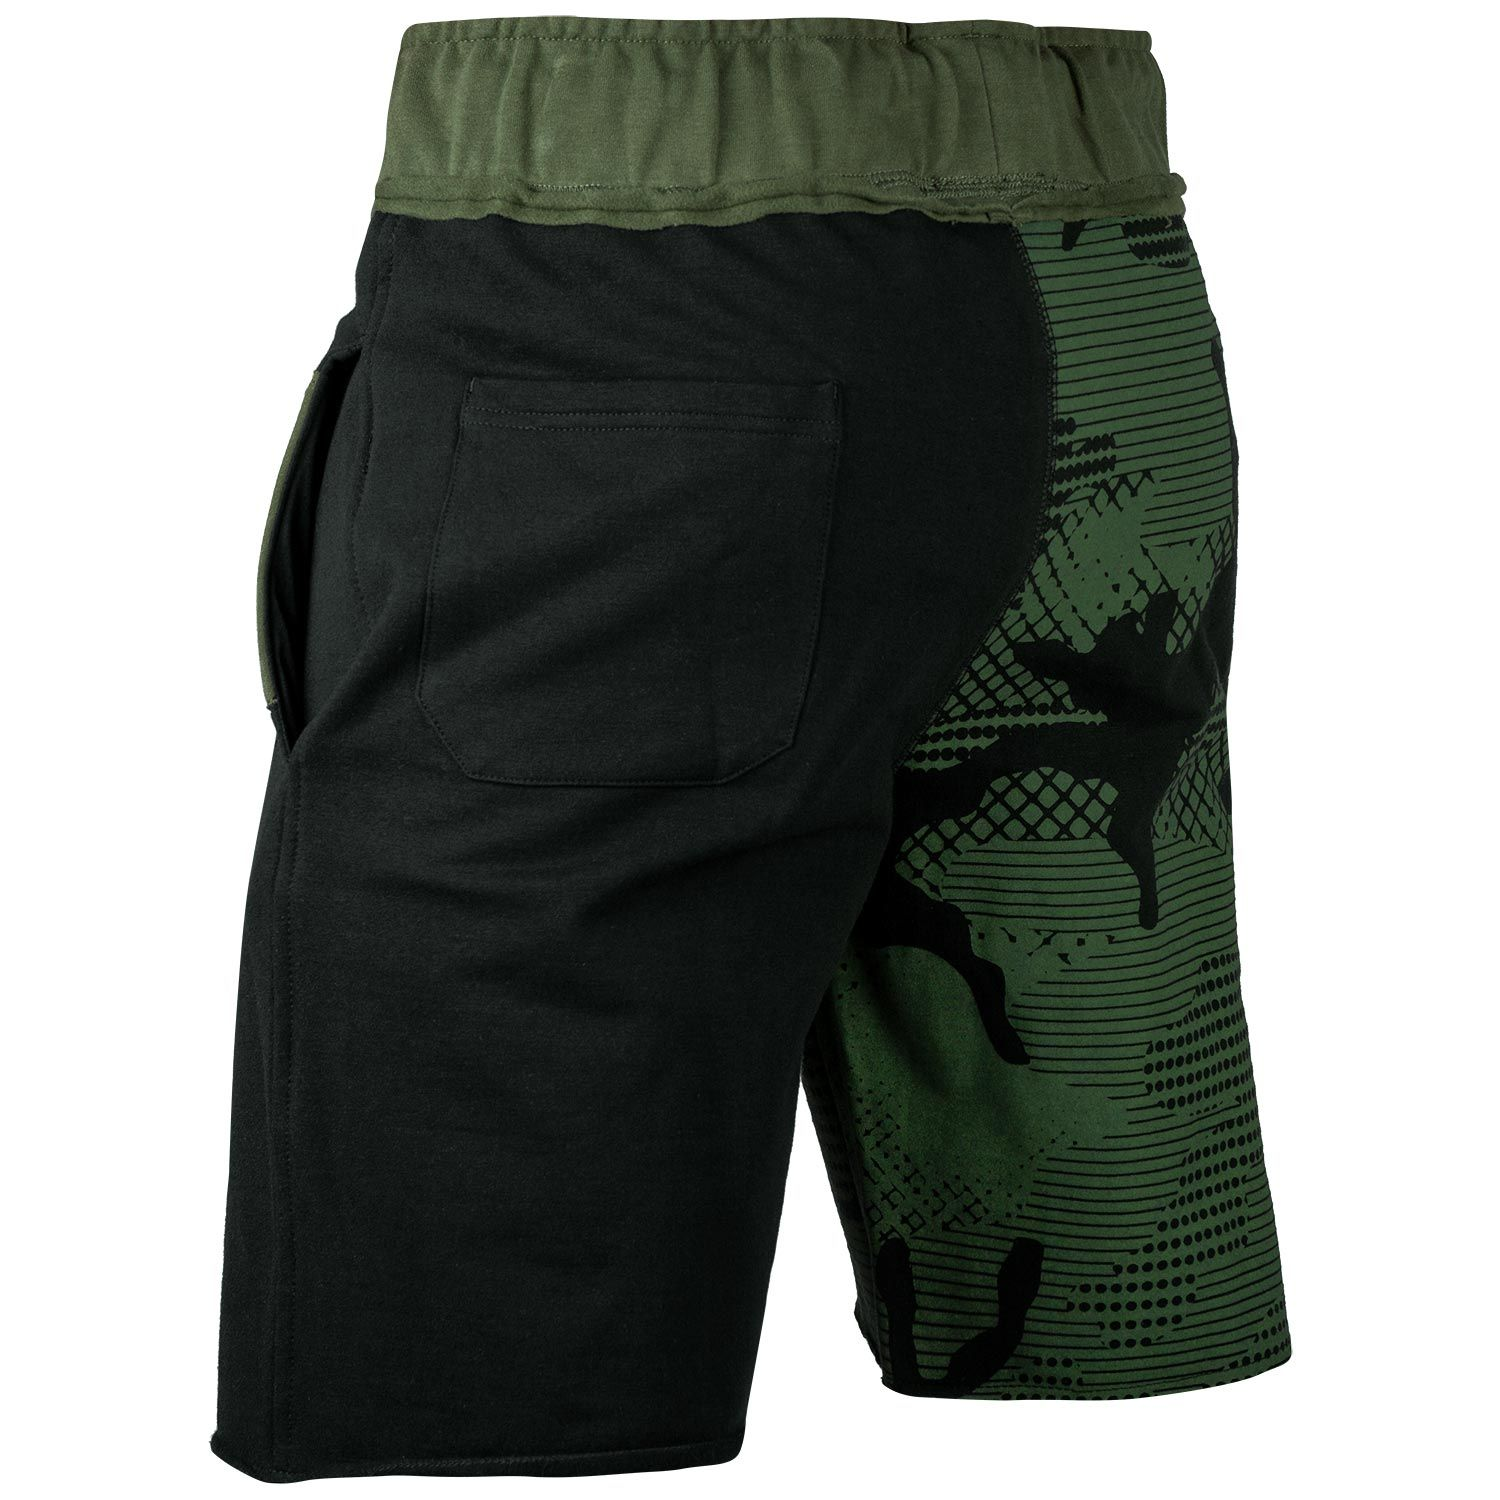 Шорты Venum Assault Cotton Shorts Khaki/Black фото 3